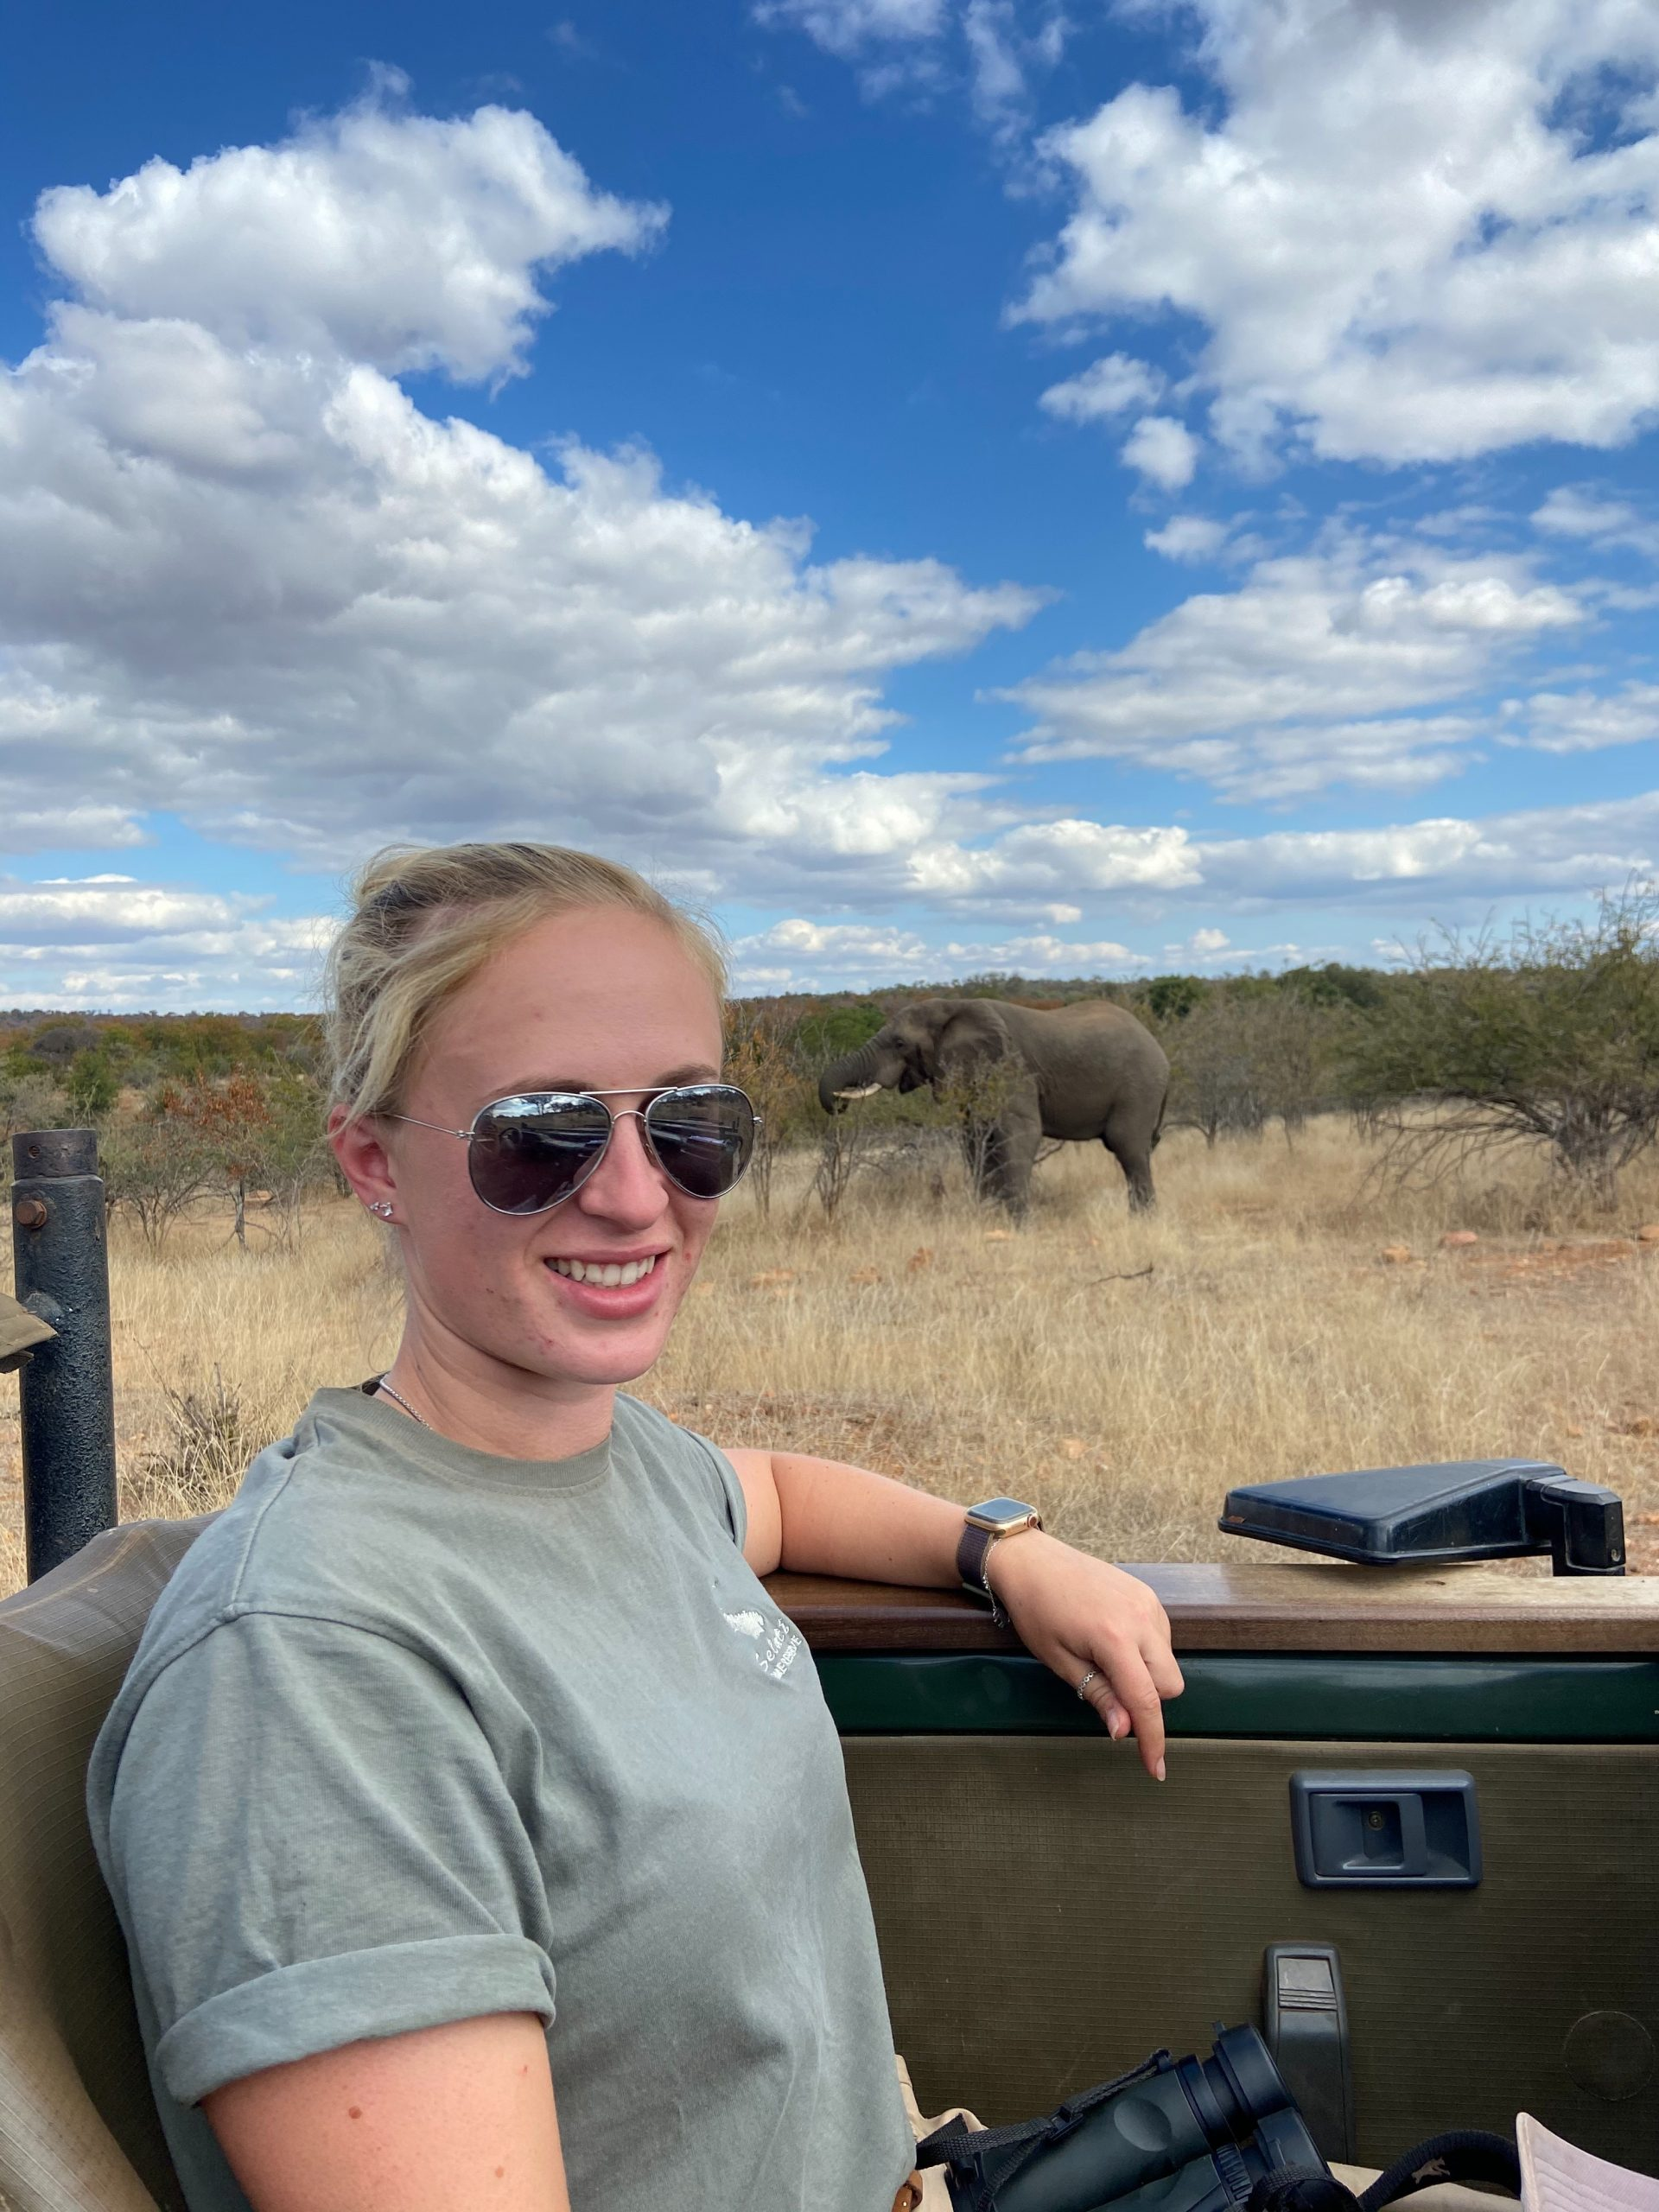 Former Student Experiences The Wild Side of Life